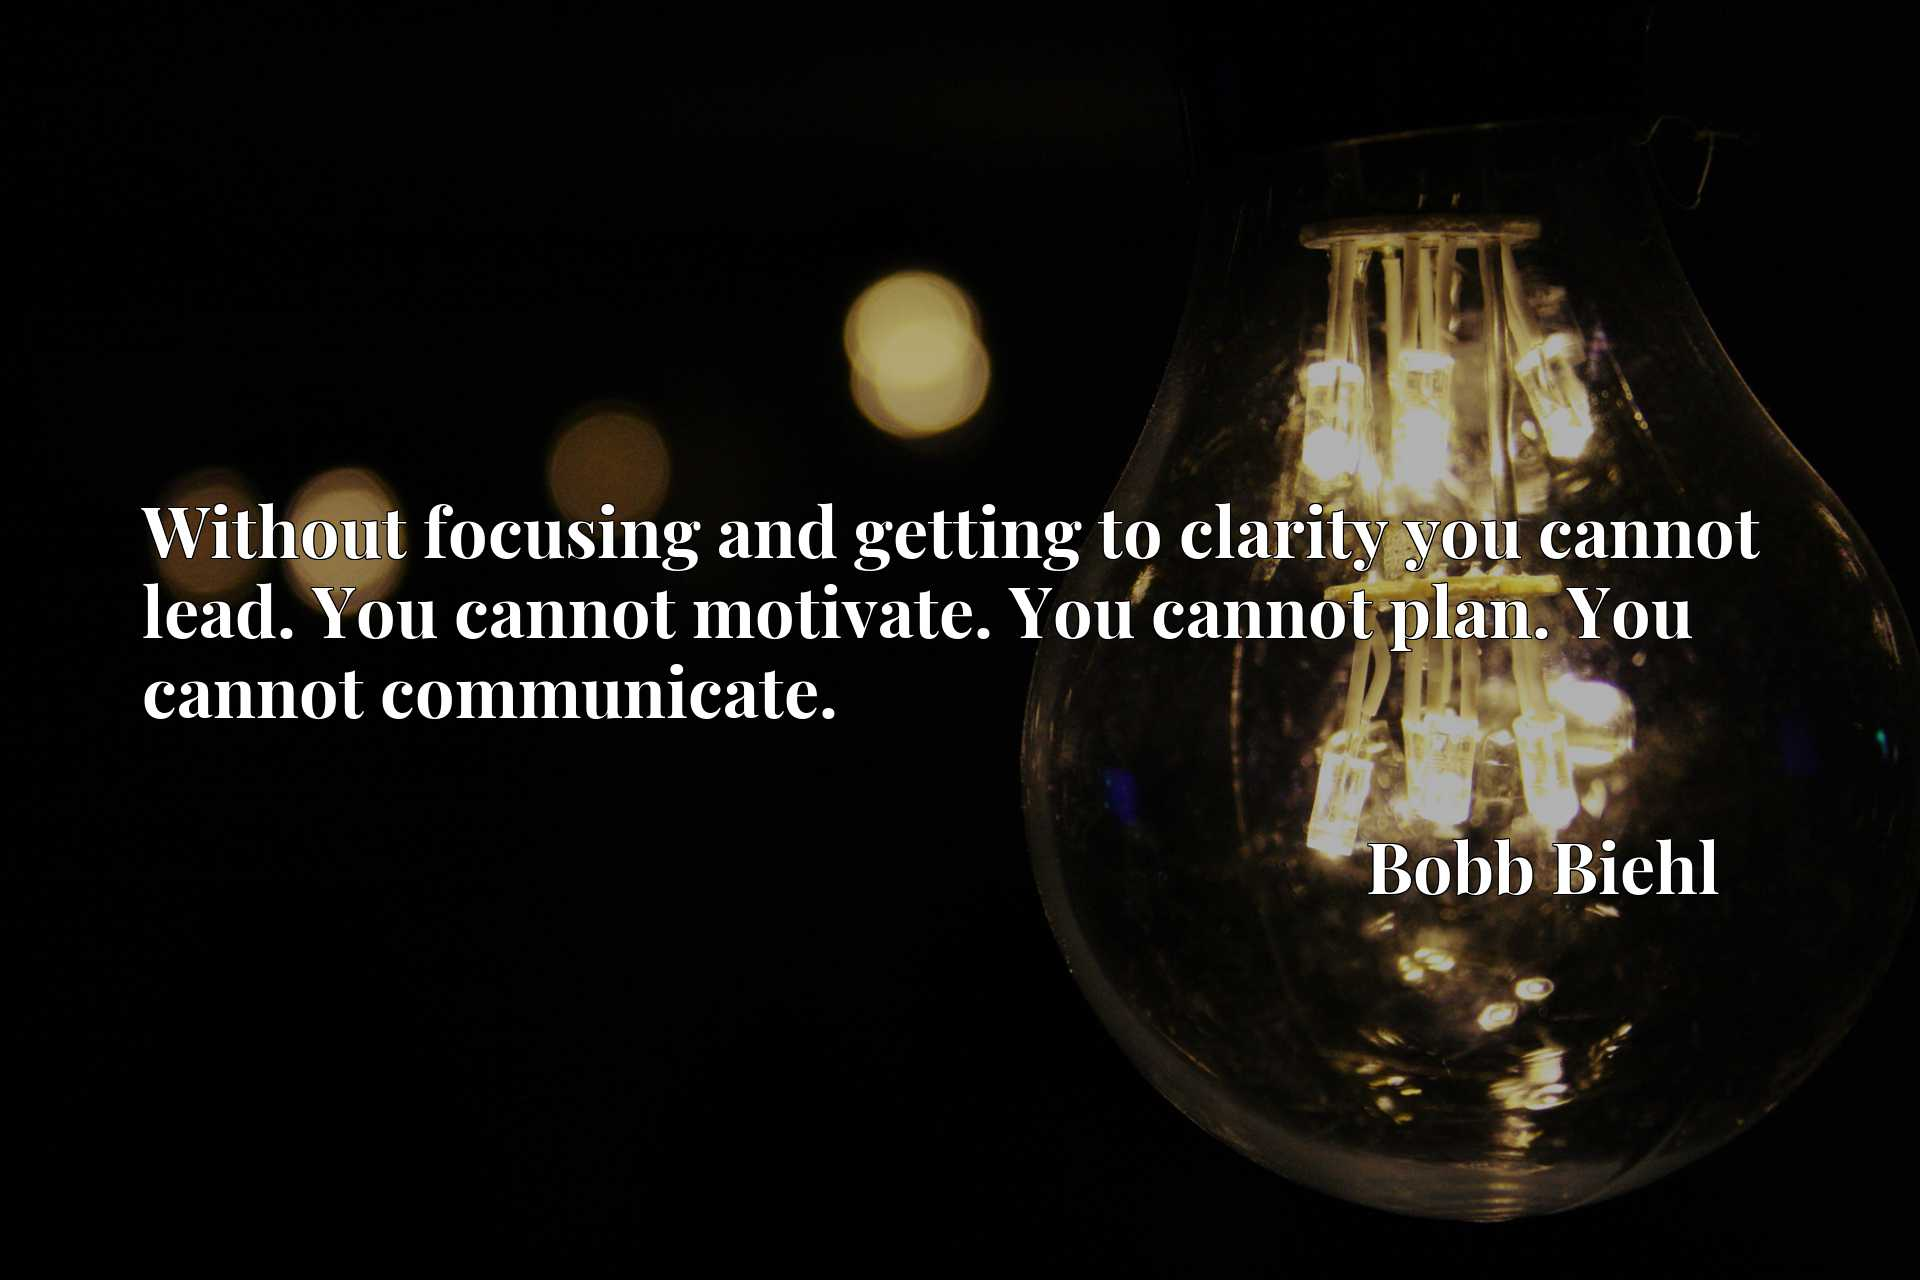 Without focusing and getting to clarity you cannot lead. You cannot motivate. You cannot plan. You cannot communicate.